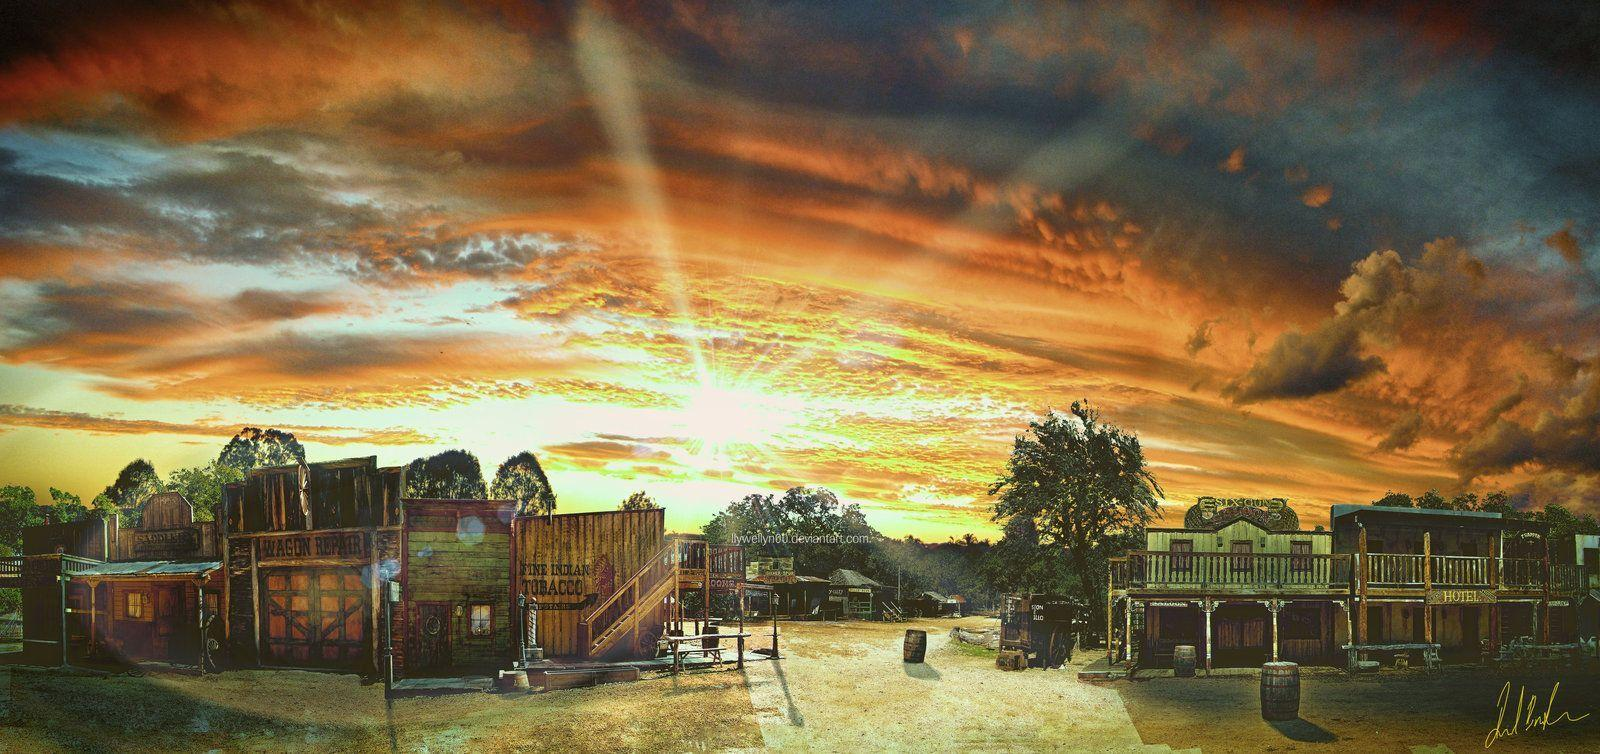 wild west wallpaper-#6